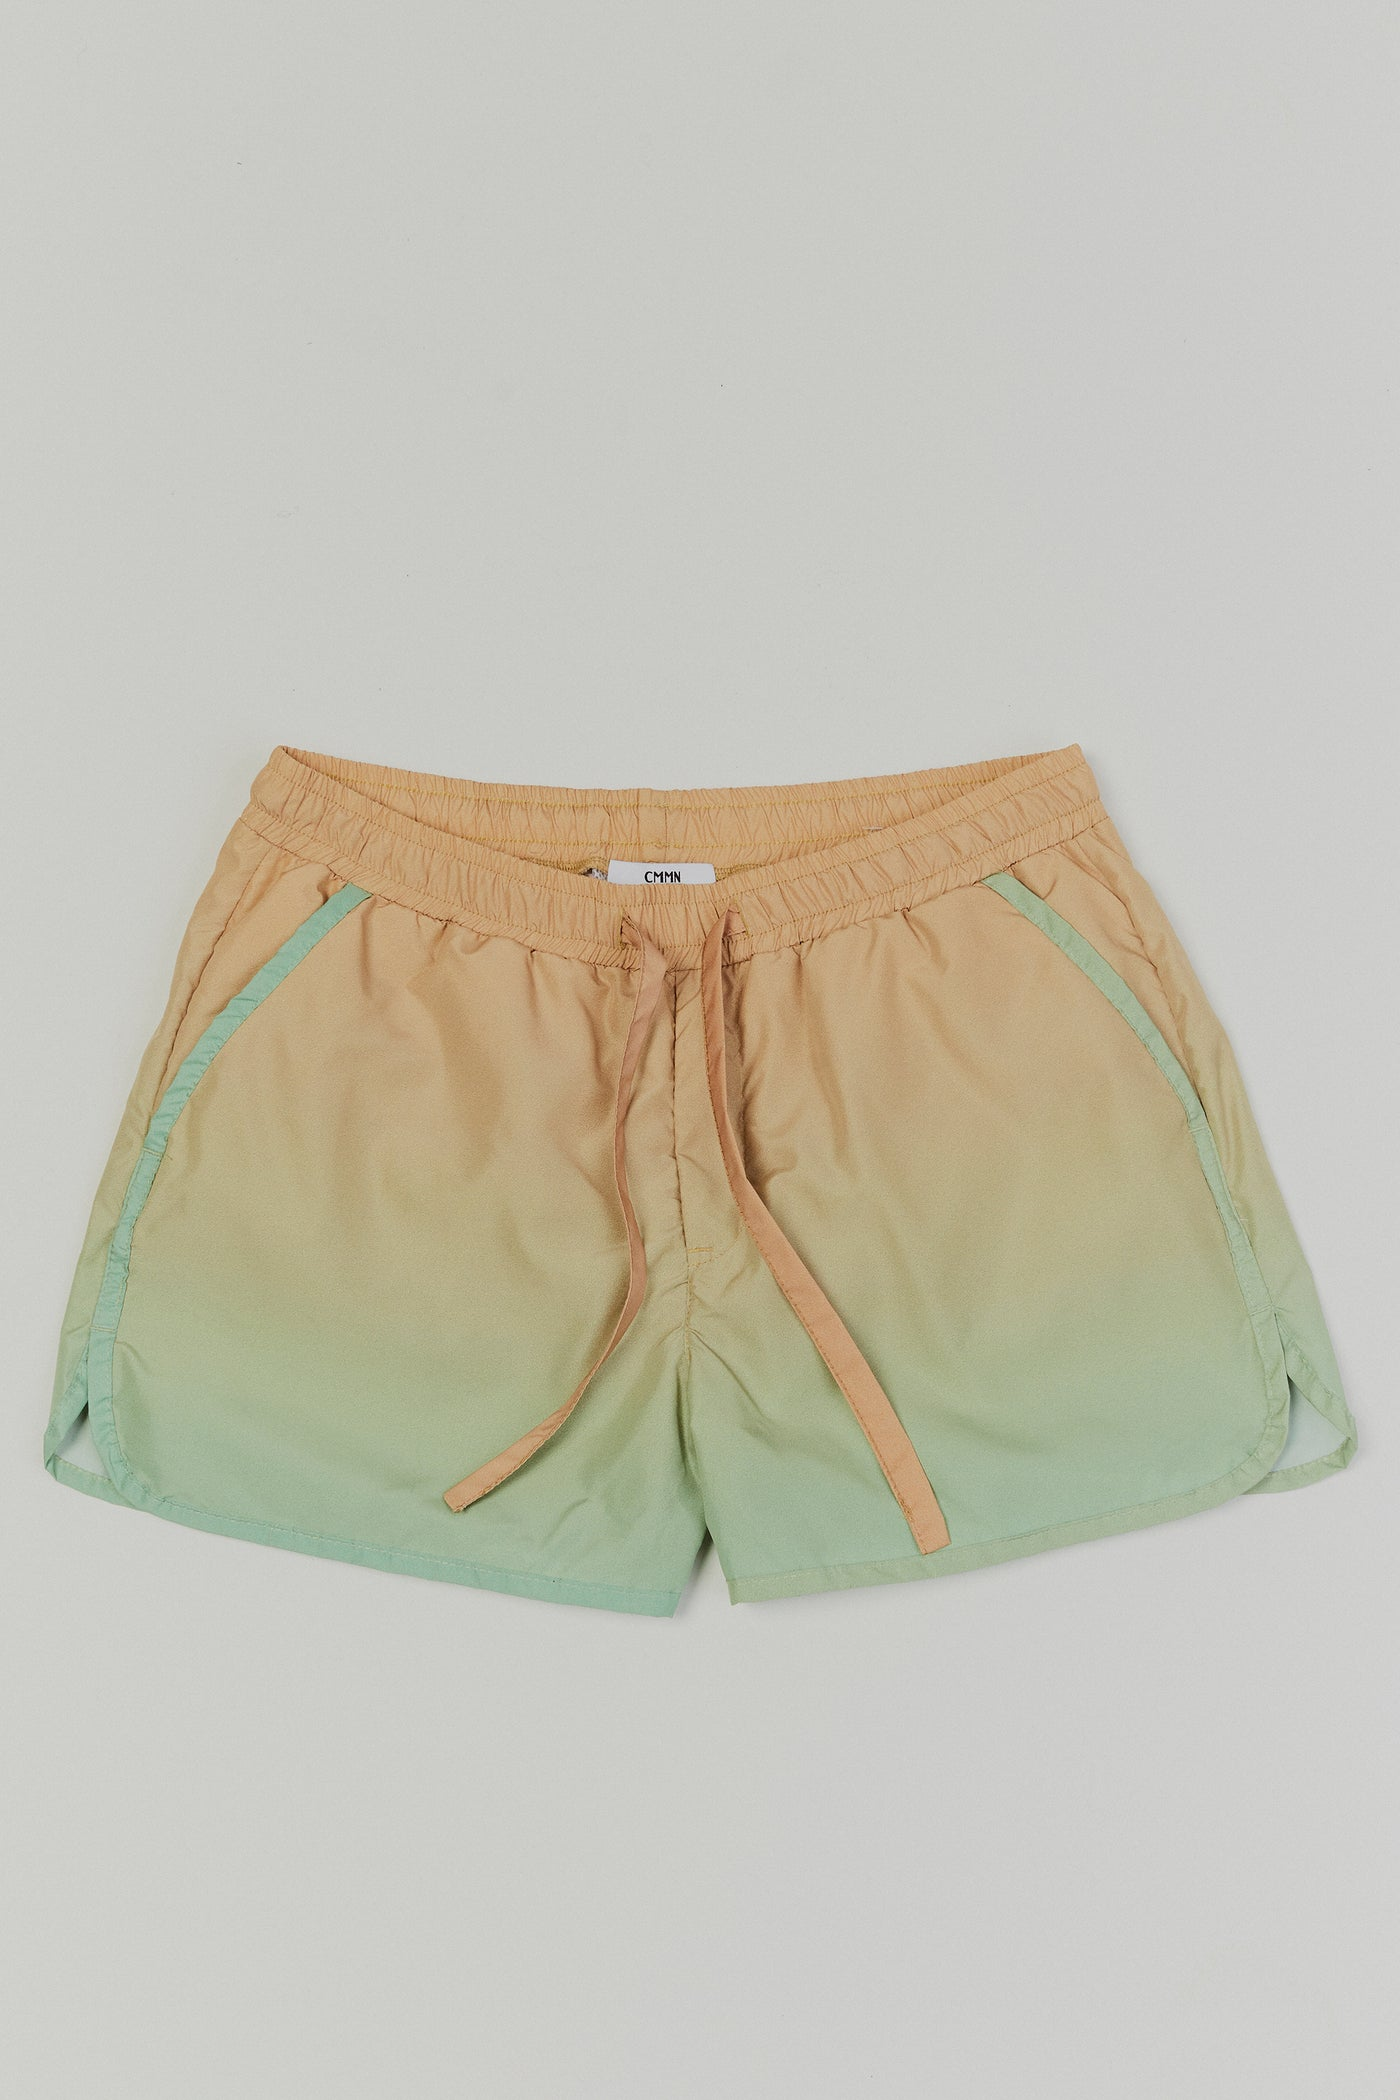 Beacon Degrade Swim Shorts Beige/Mint